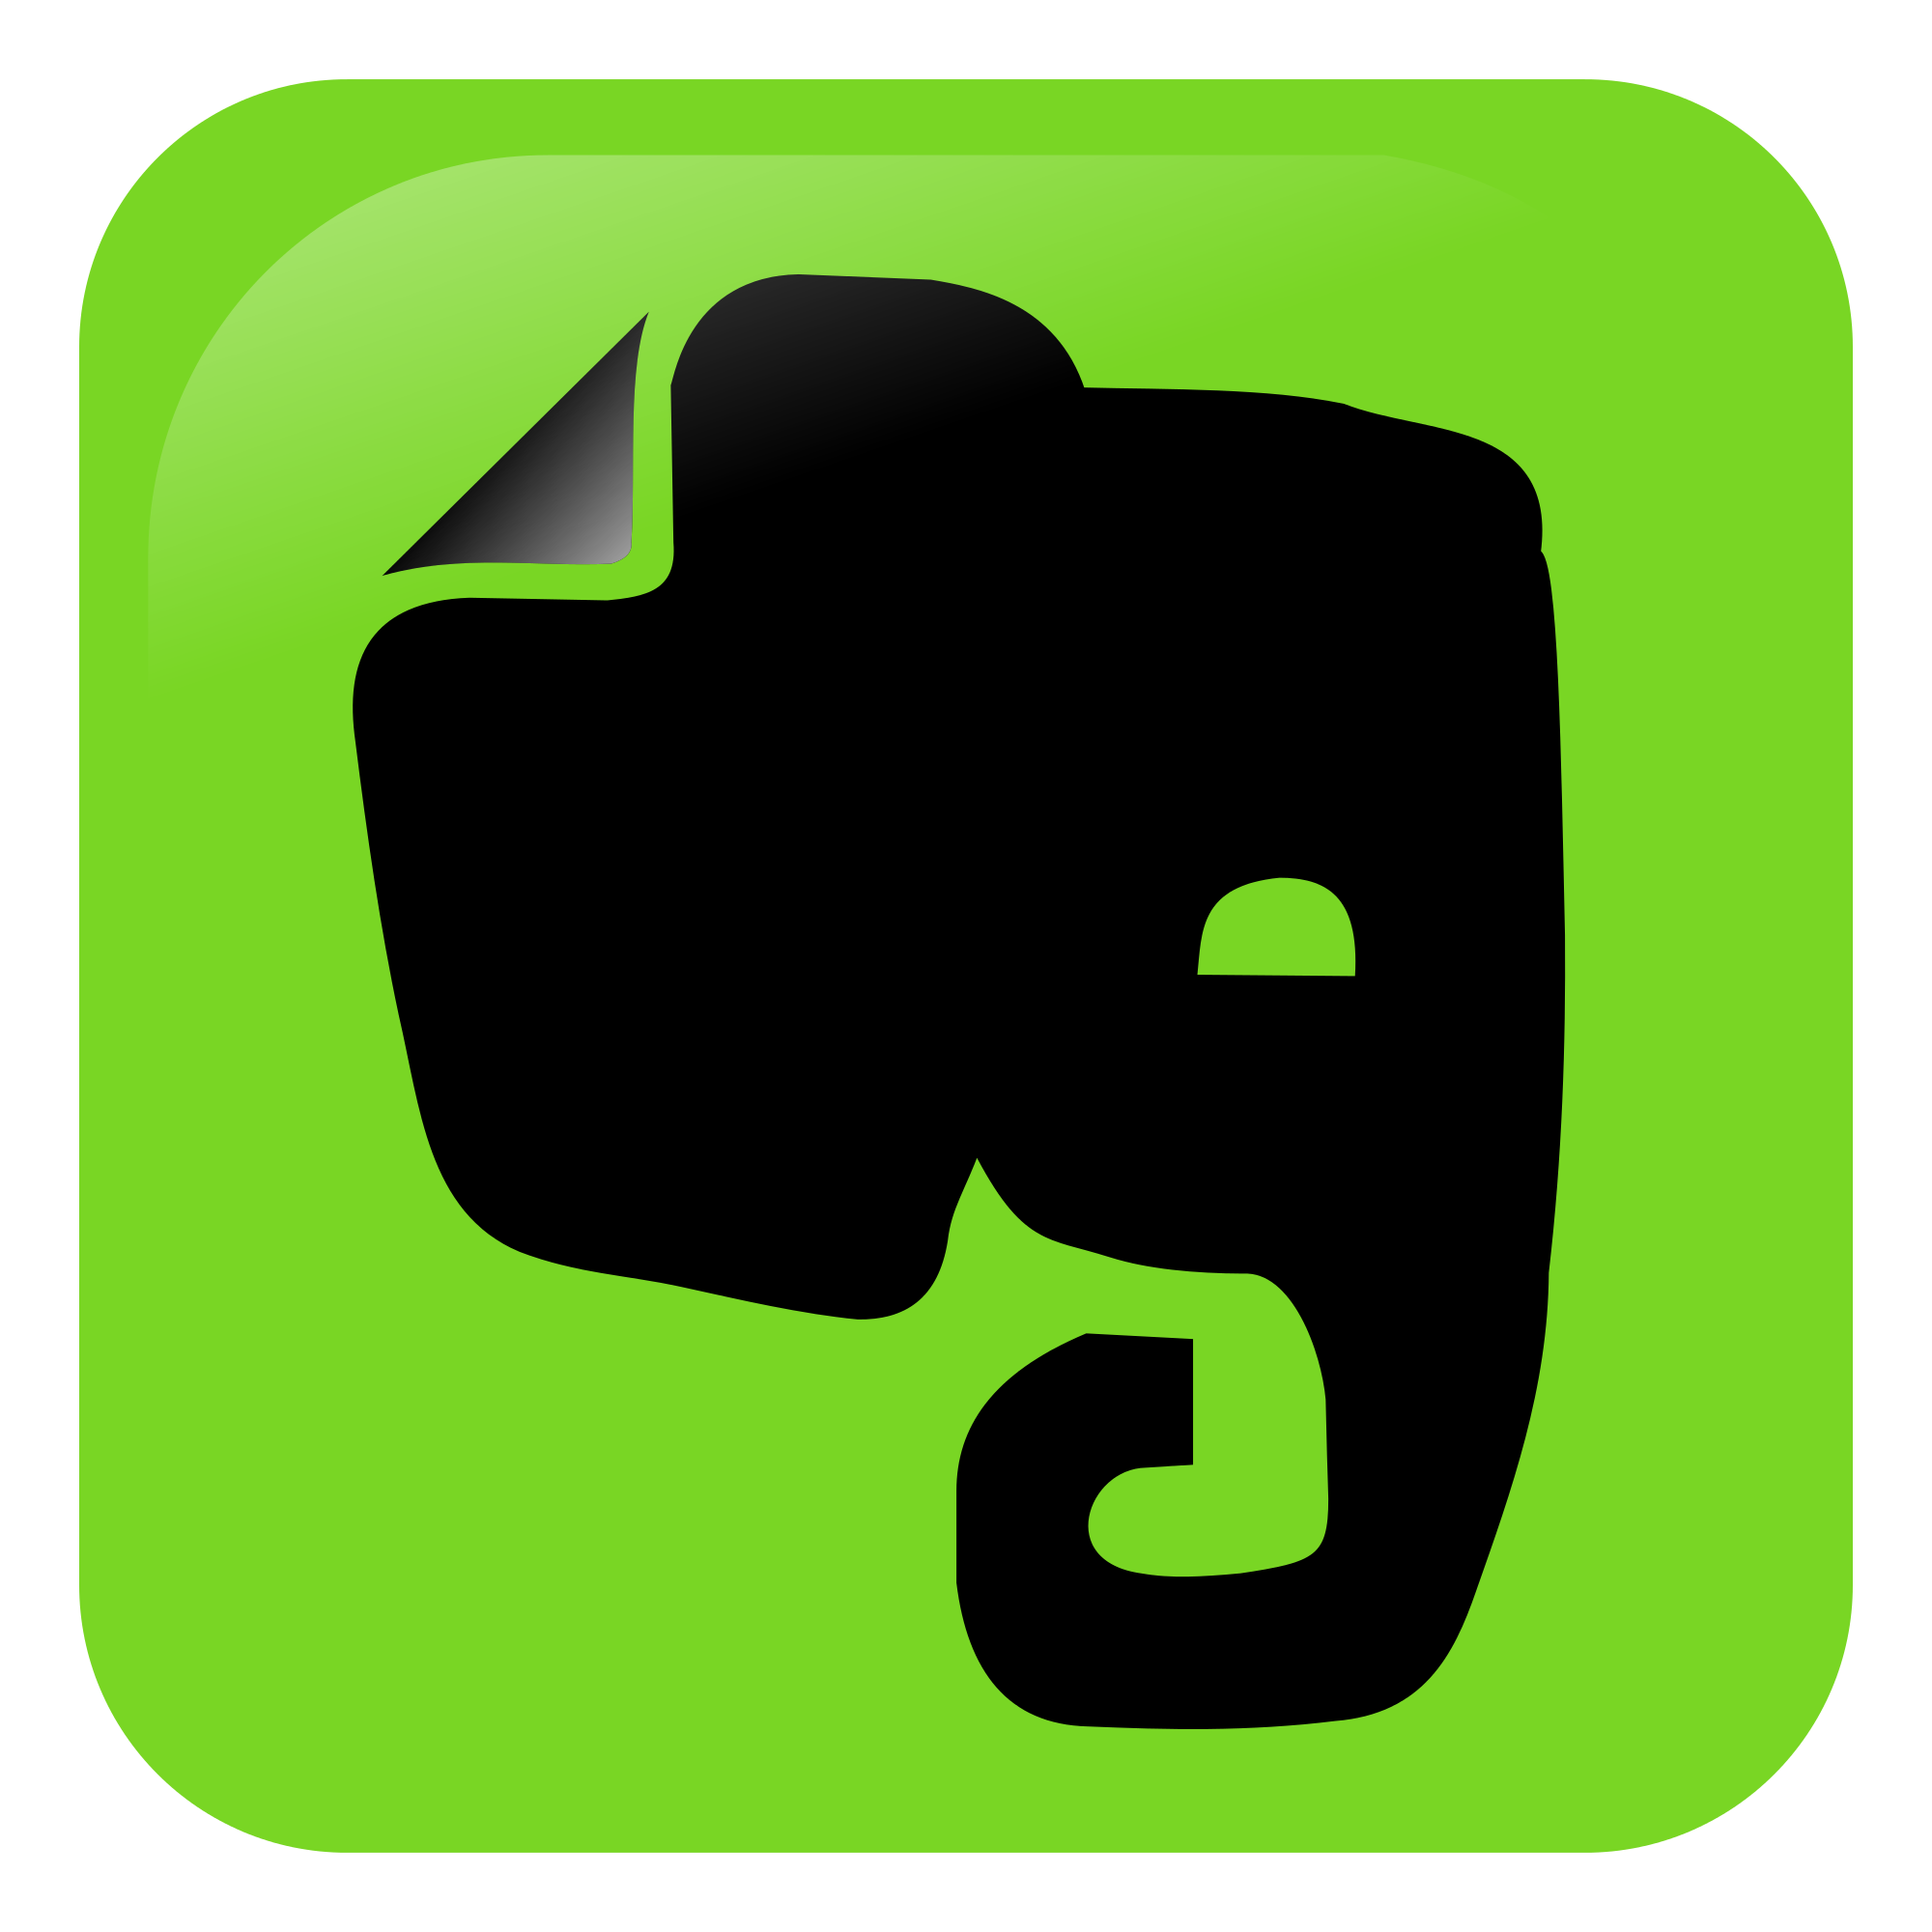 Evernote Extends Deutsche Telekom Partnership to 12 New ...